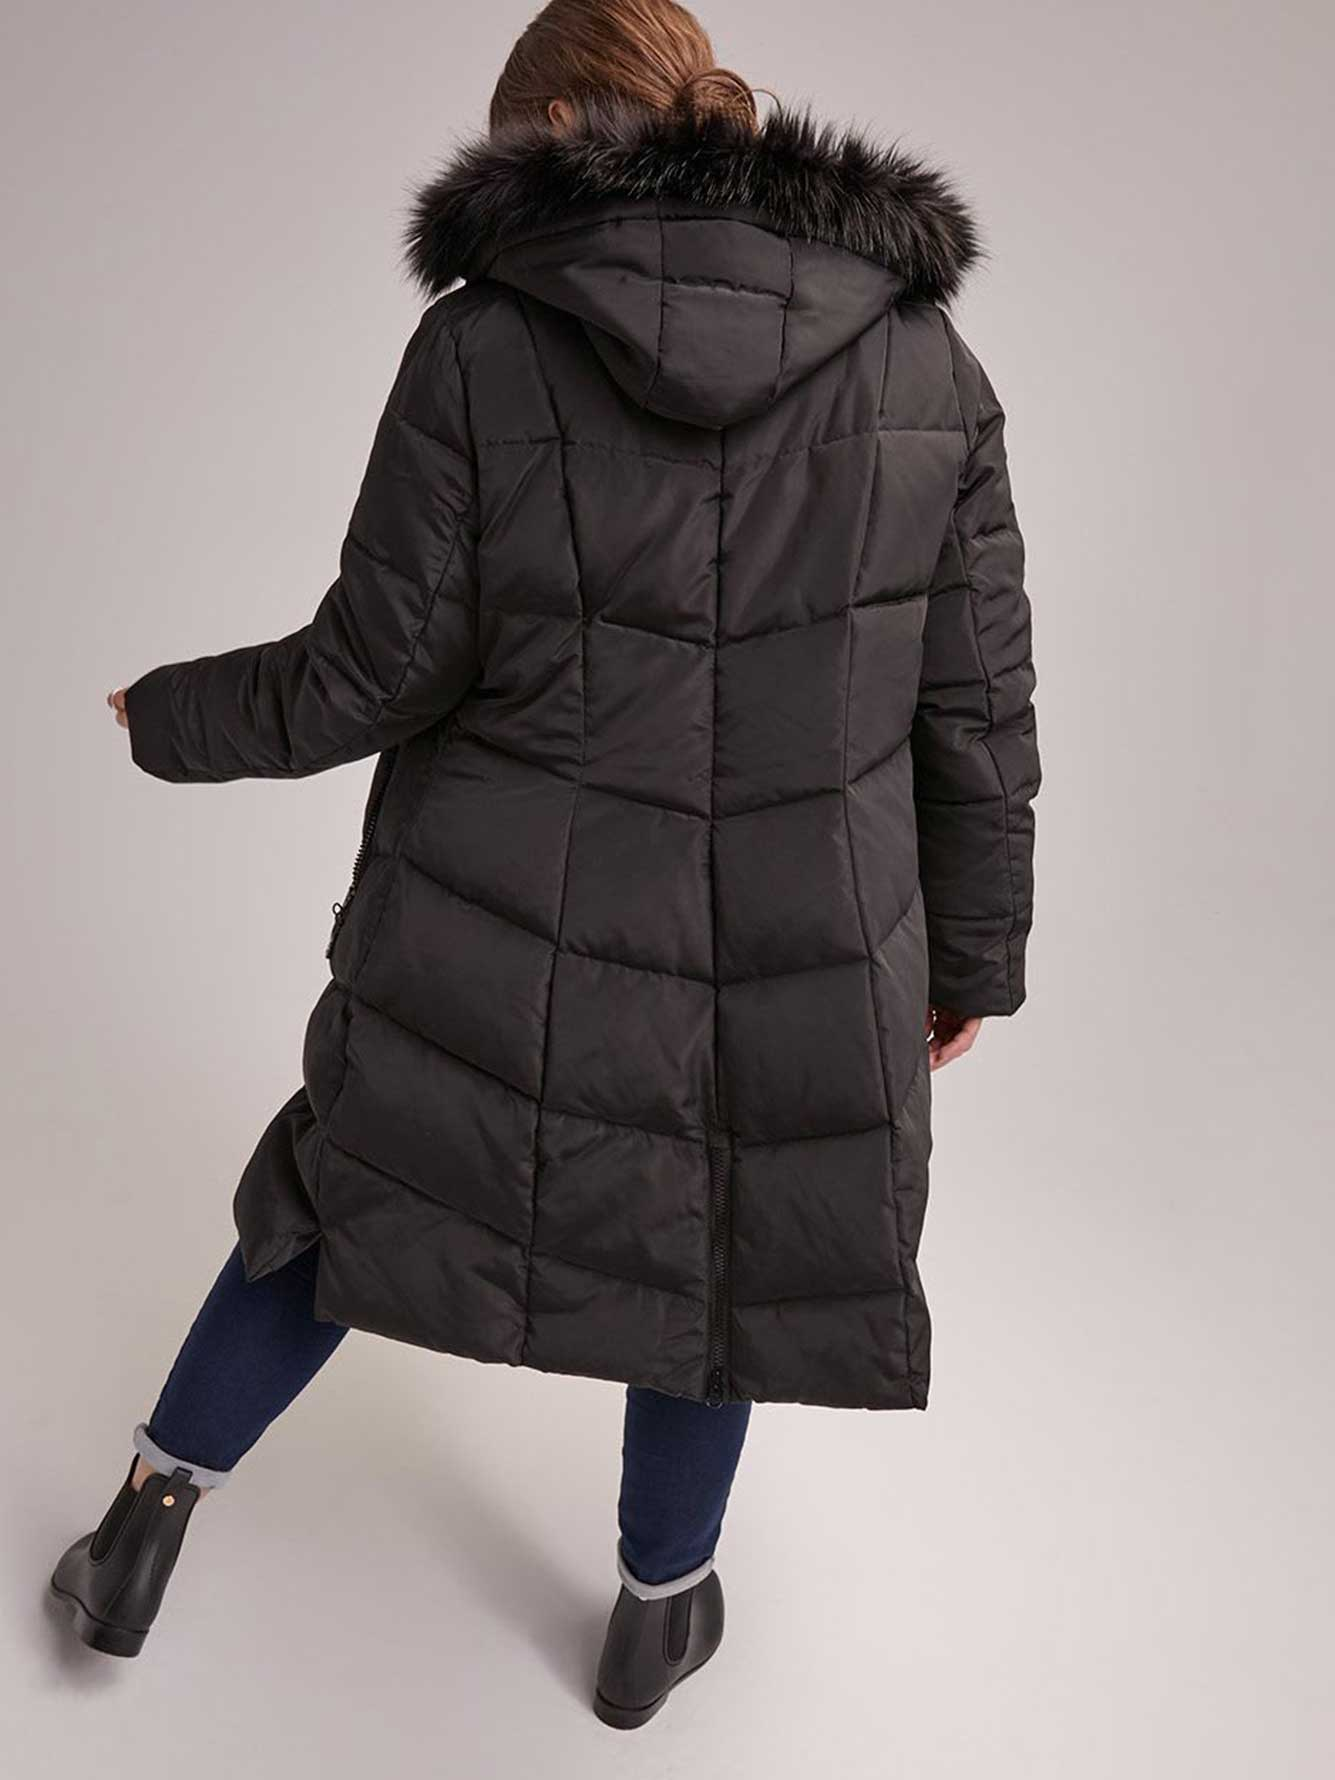 f2e40ea1722 Hooded Long Puffer Coat with Removable Faux Fur Trim - Livik ...